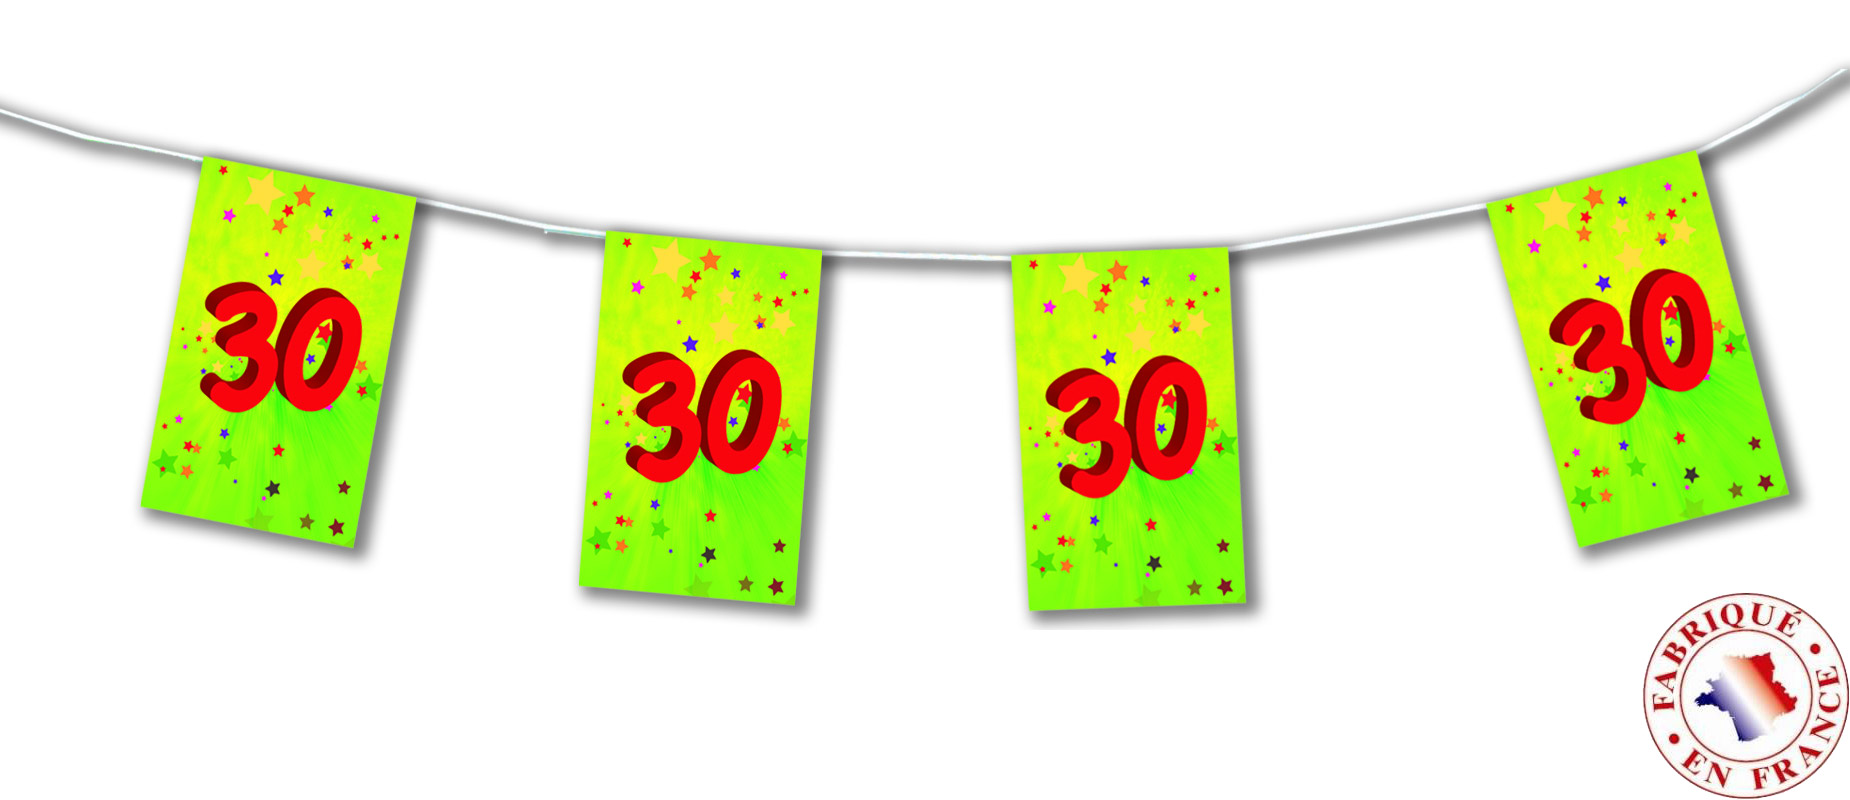 Guirlande fanions papier 30 ans 4m achat de decoration for Decoration 30 ans